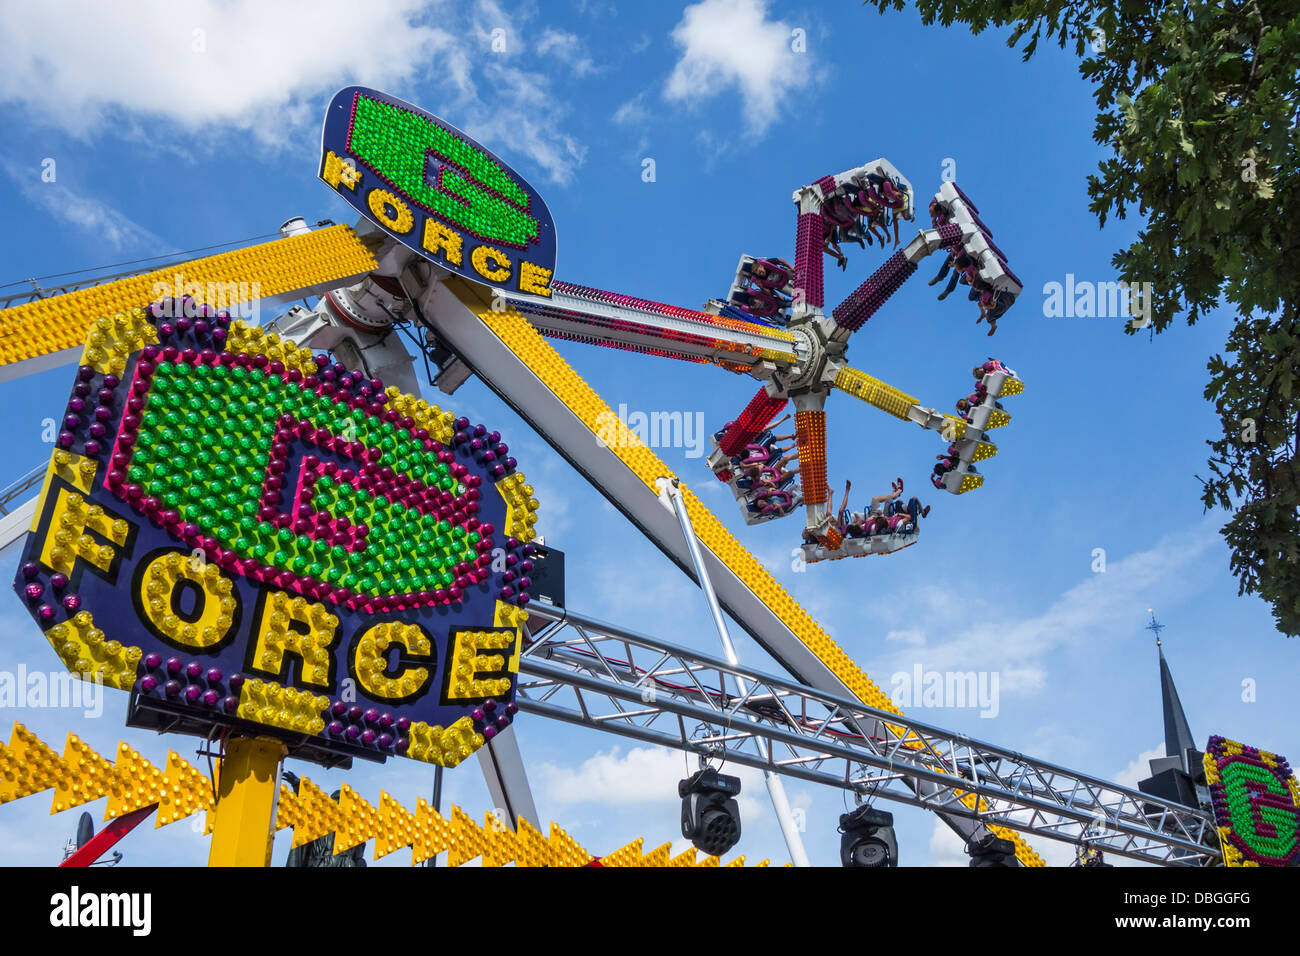 Excited thrillseekers / thrill seekers having fun on the fairground attraction G Force at travelling funfair / traveling - Stock Image